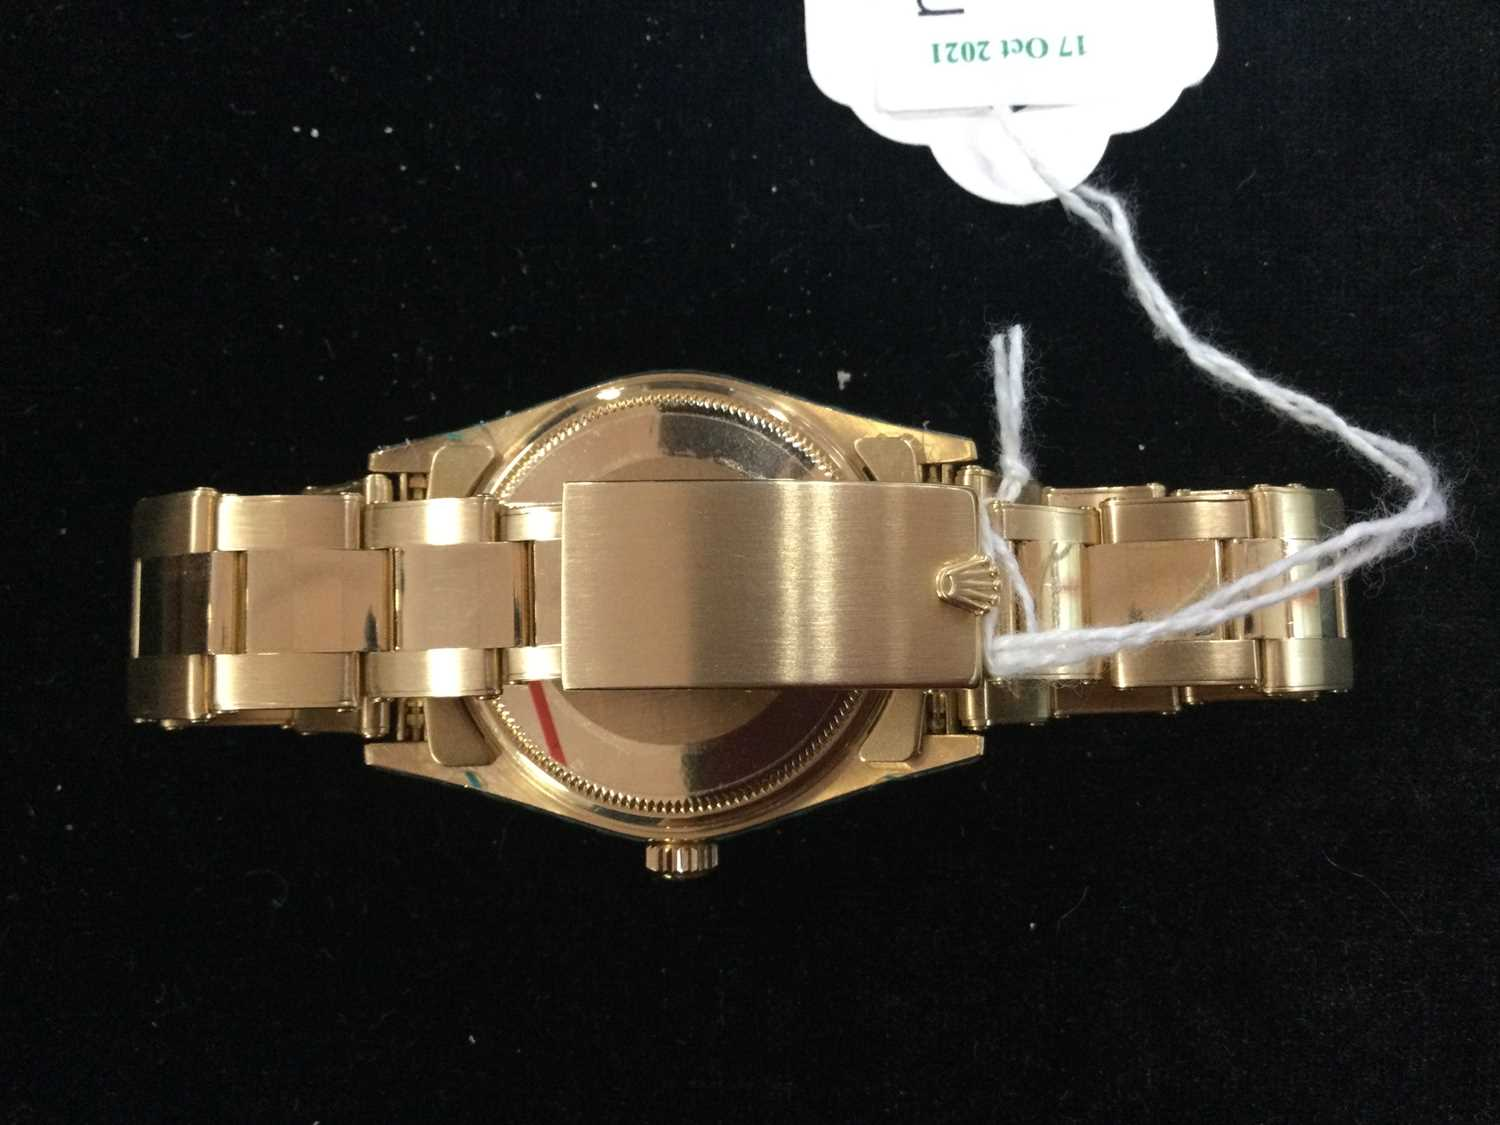 A GENTLEMAN'S ROLEX OYSTER PERPETUAL EIGHTEEN CARAT GOLD AUTOMATIC WRIST WATCH - Image 3 of 9